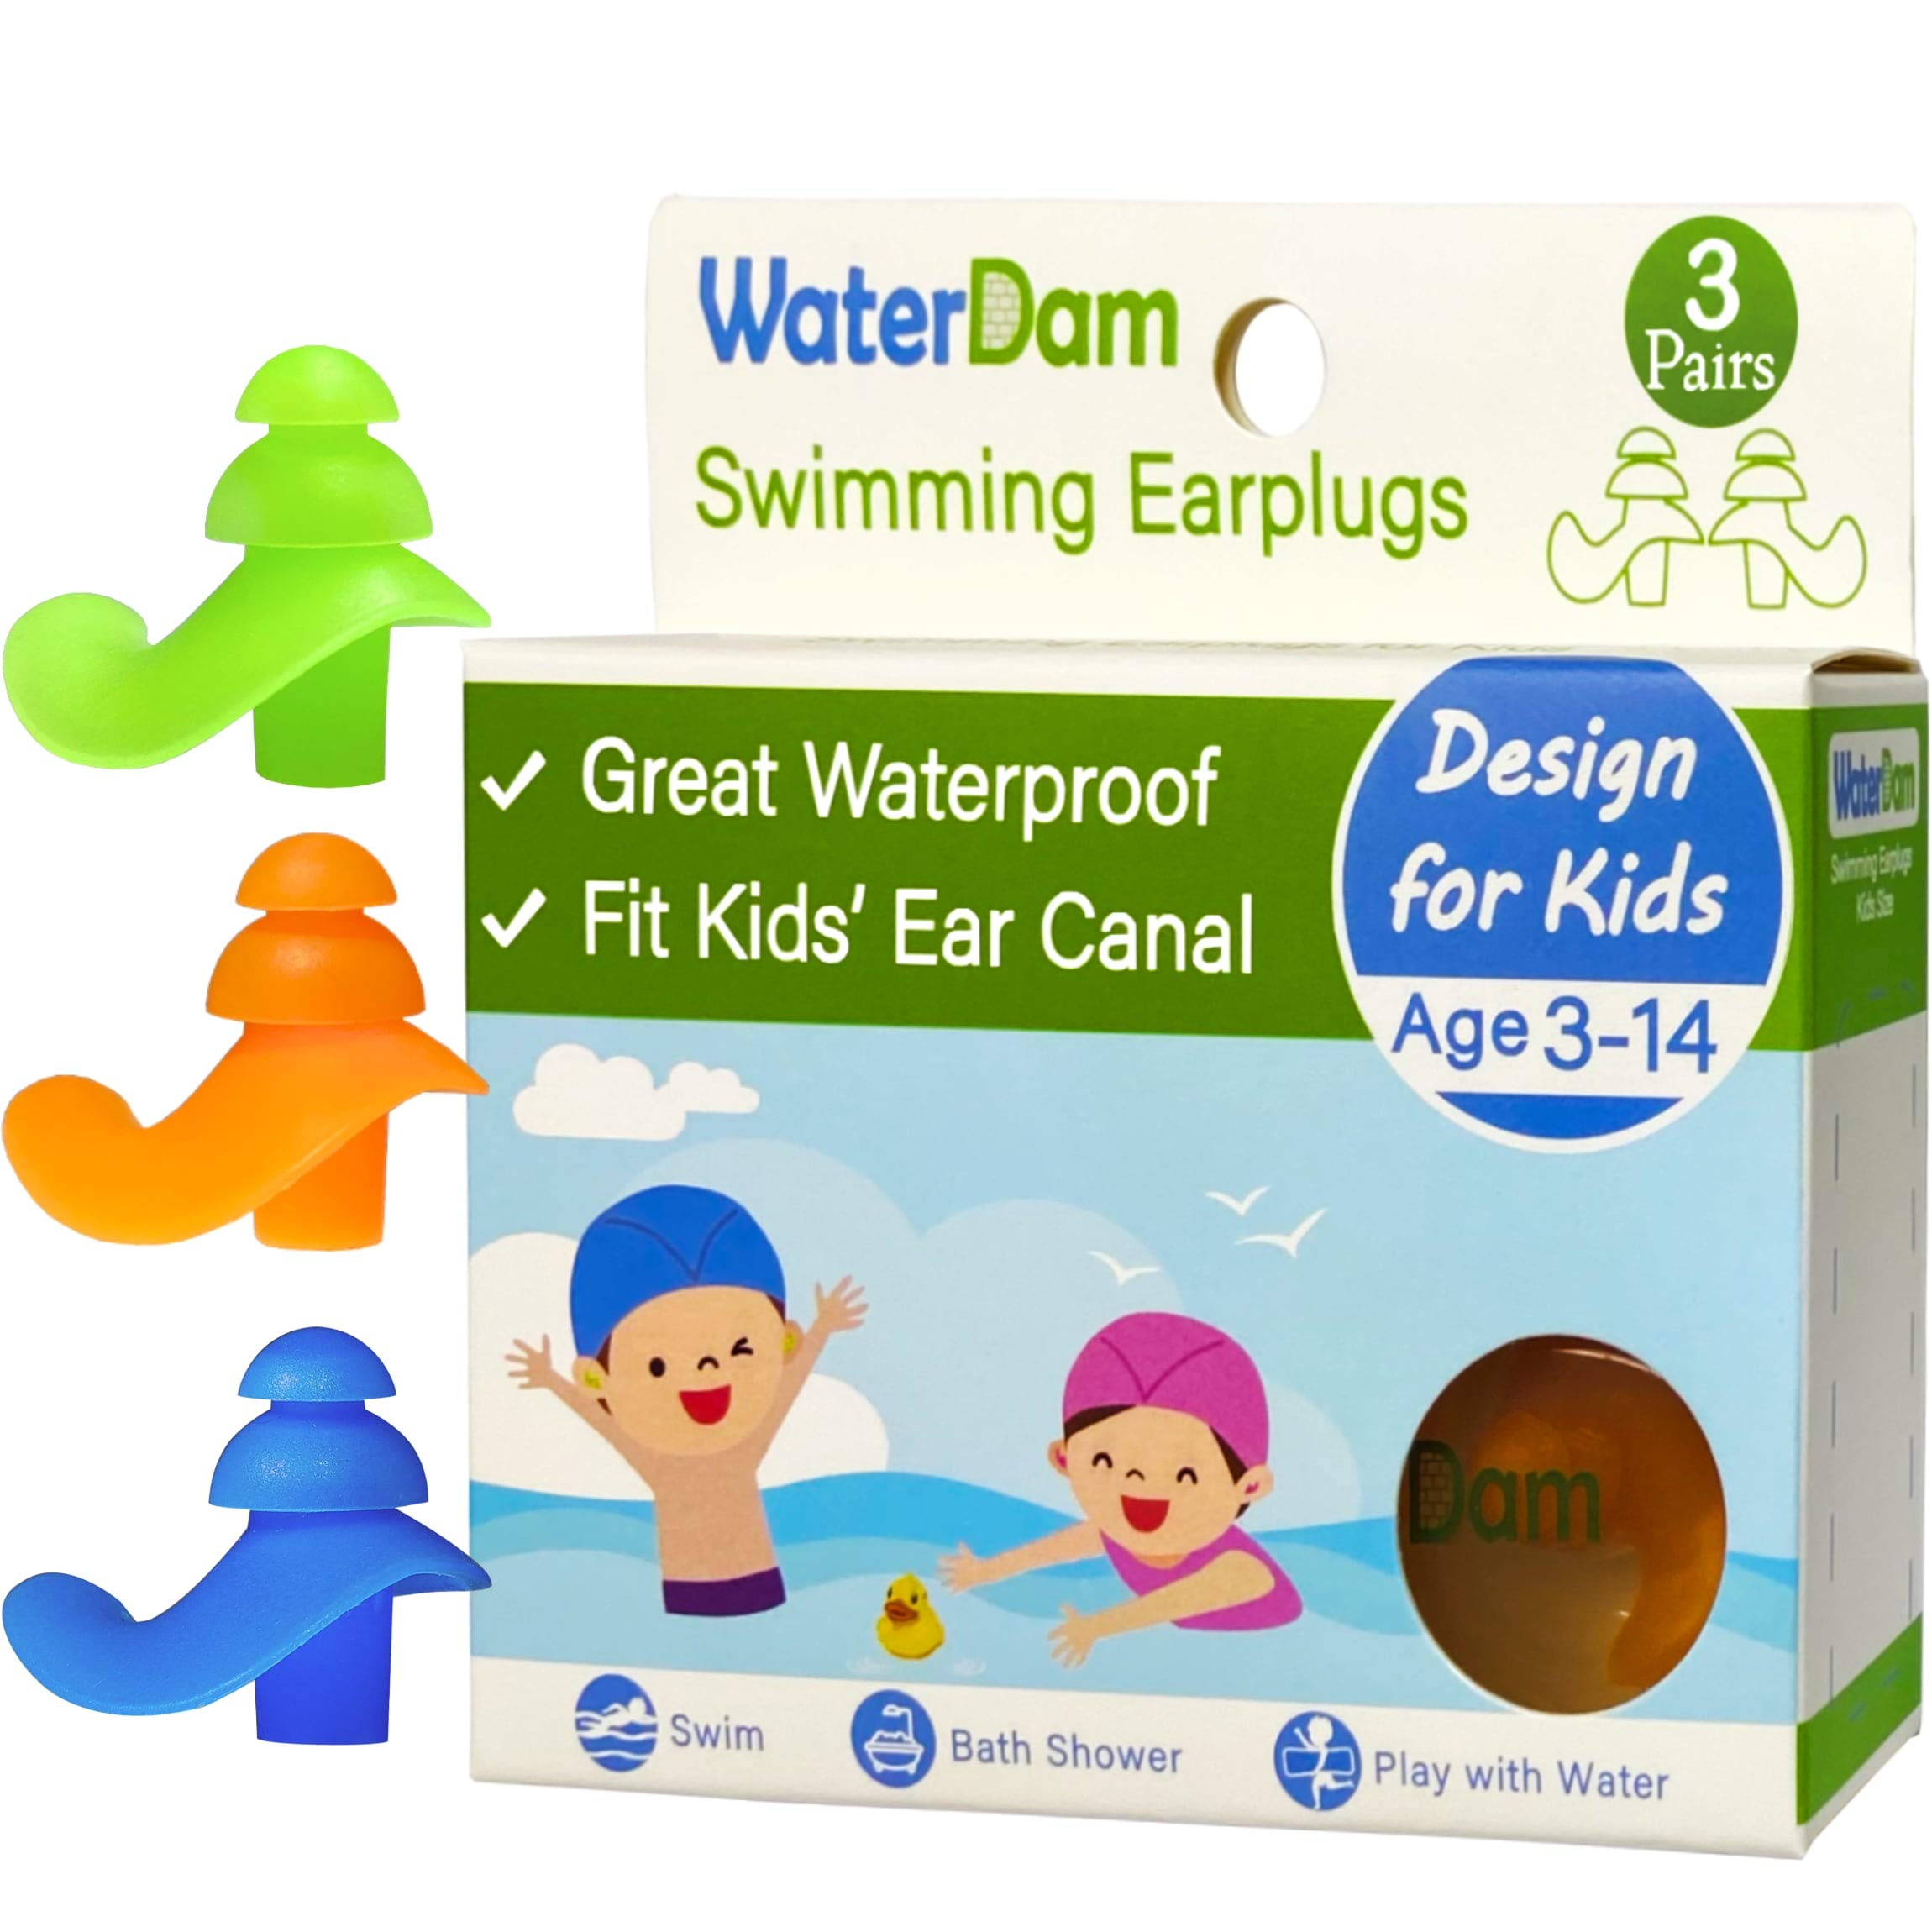 WaterDam Ear Plugs for Swimming Kids – 3 Pairs Soft Silicon Earplugs Reusable, Great Waterproof !!! Prevent Swimmer's Ear(Green, Orange, Blue)